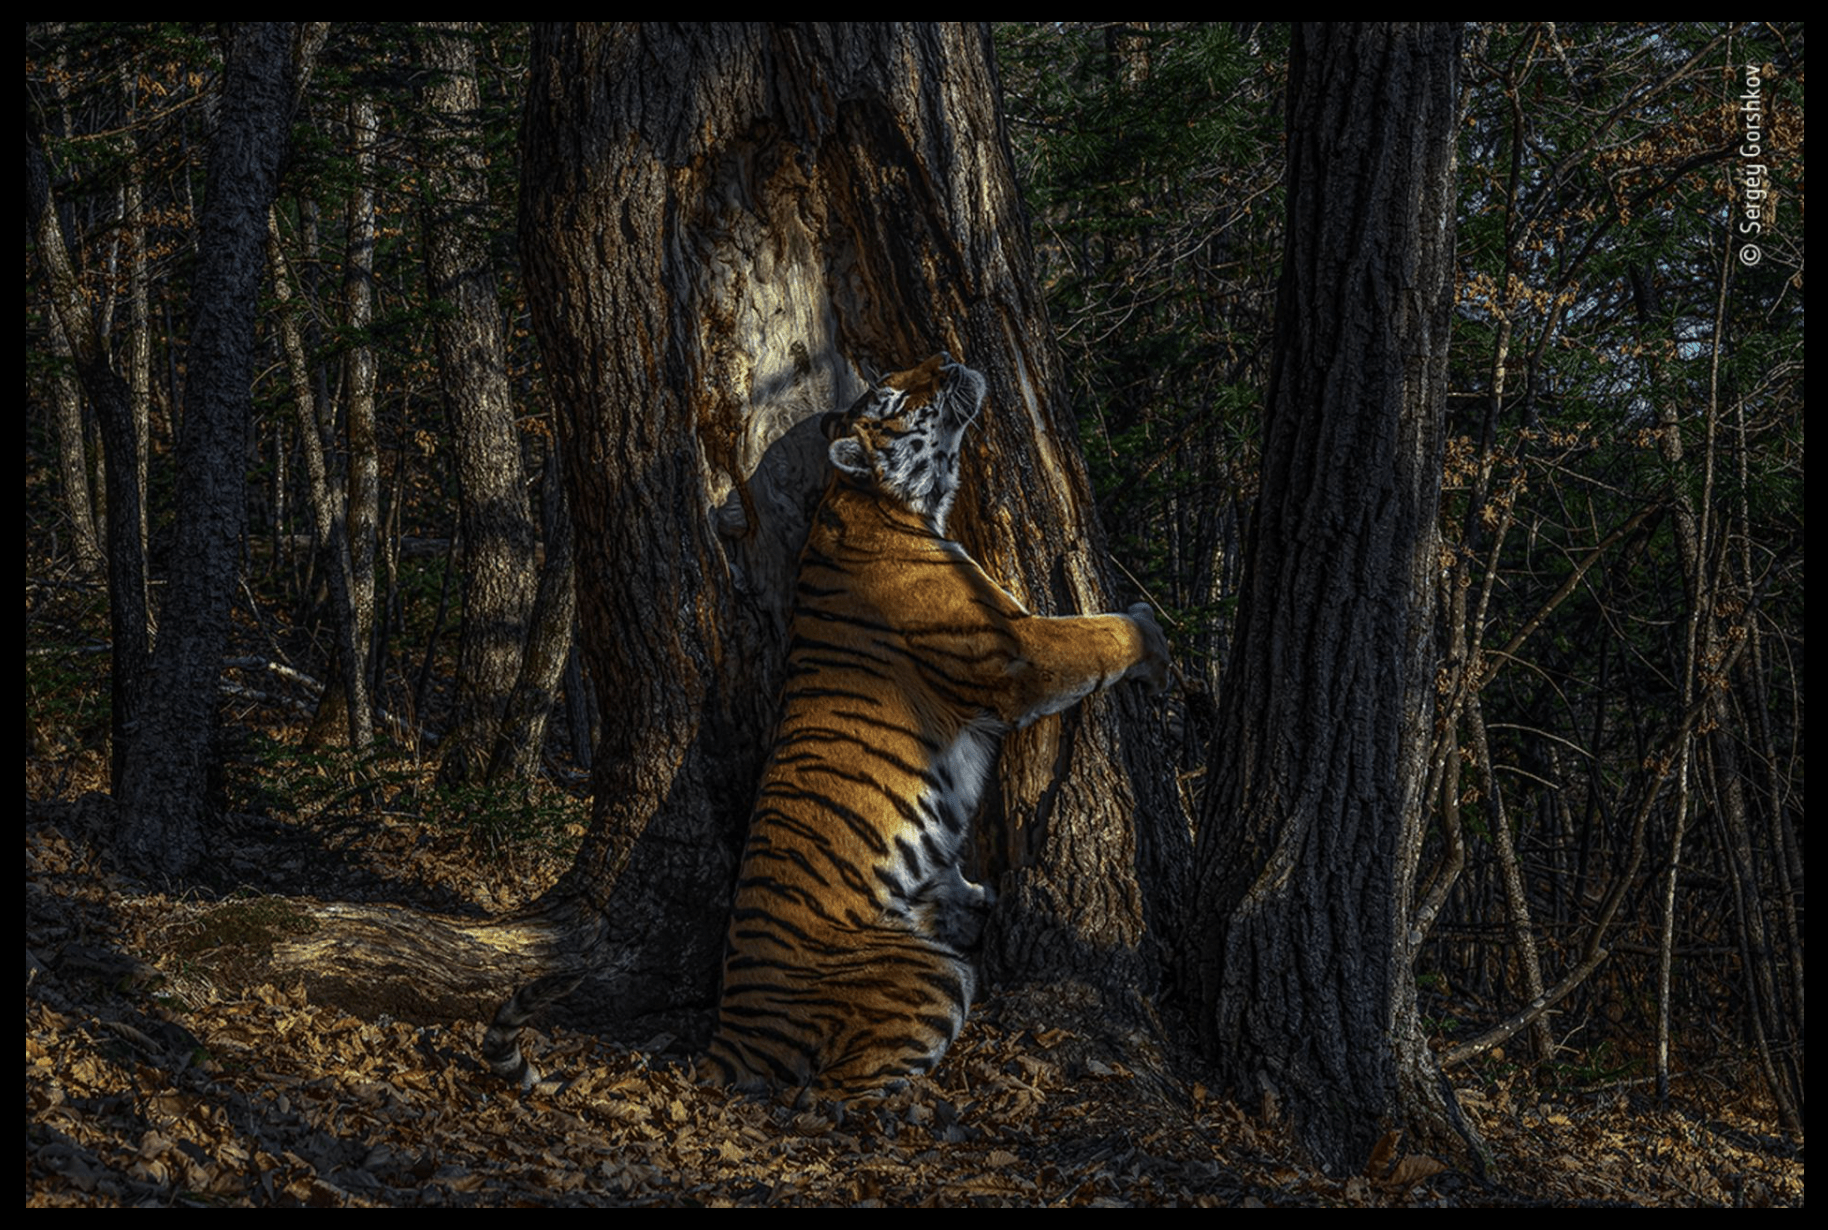 image of a tiger hugging a tree in the forest